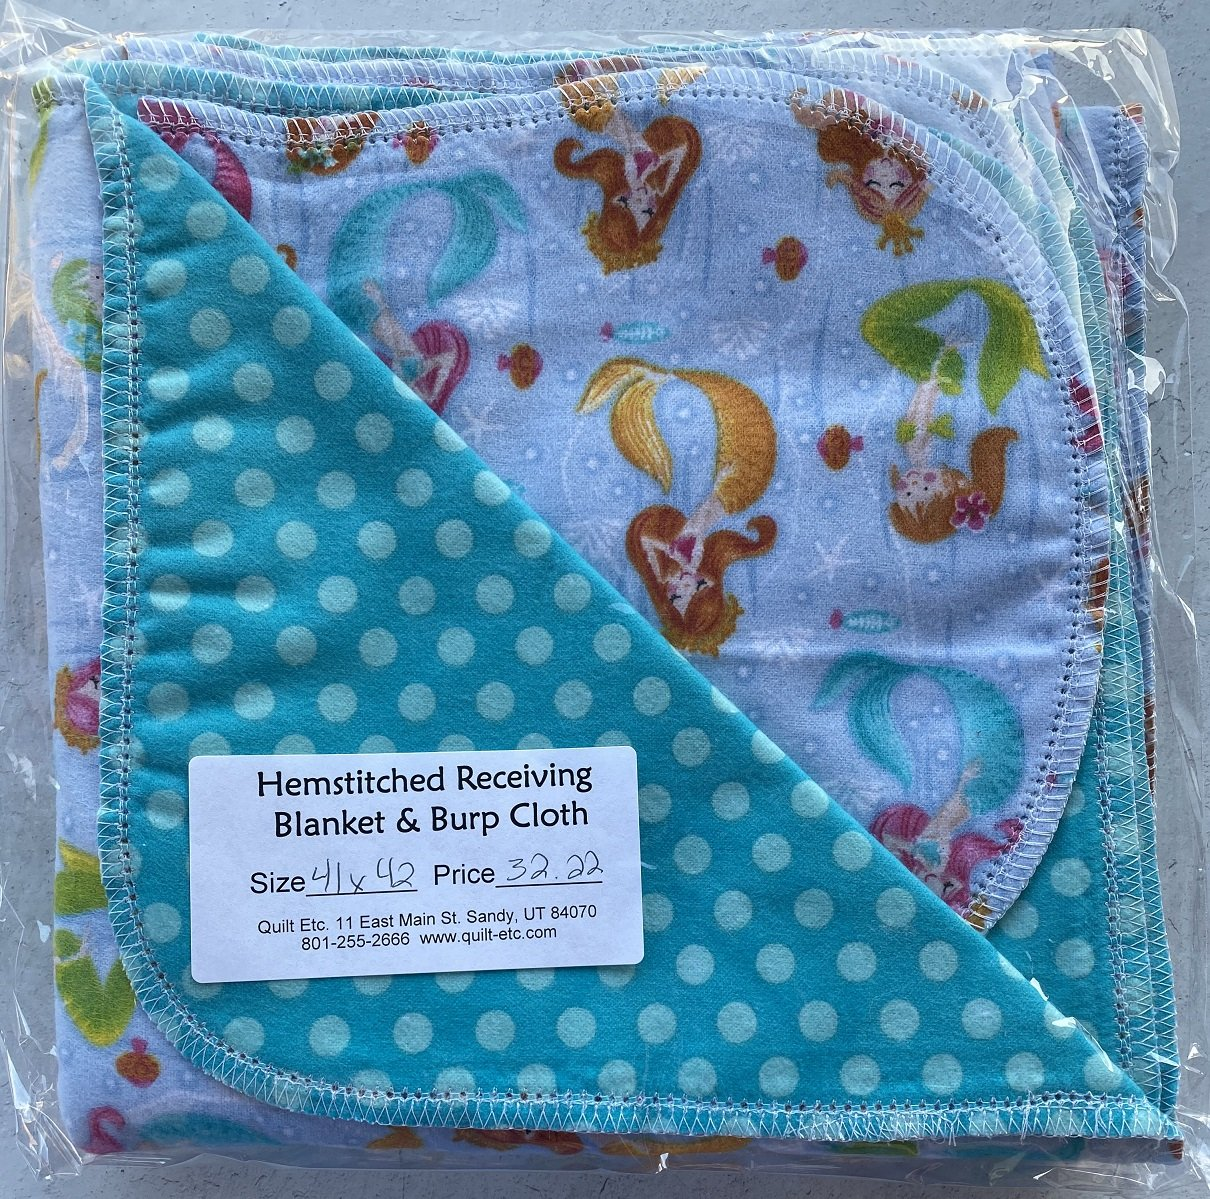 Hemstitched Receiving Blanket & Burp Cloth 24